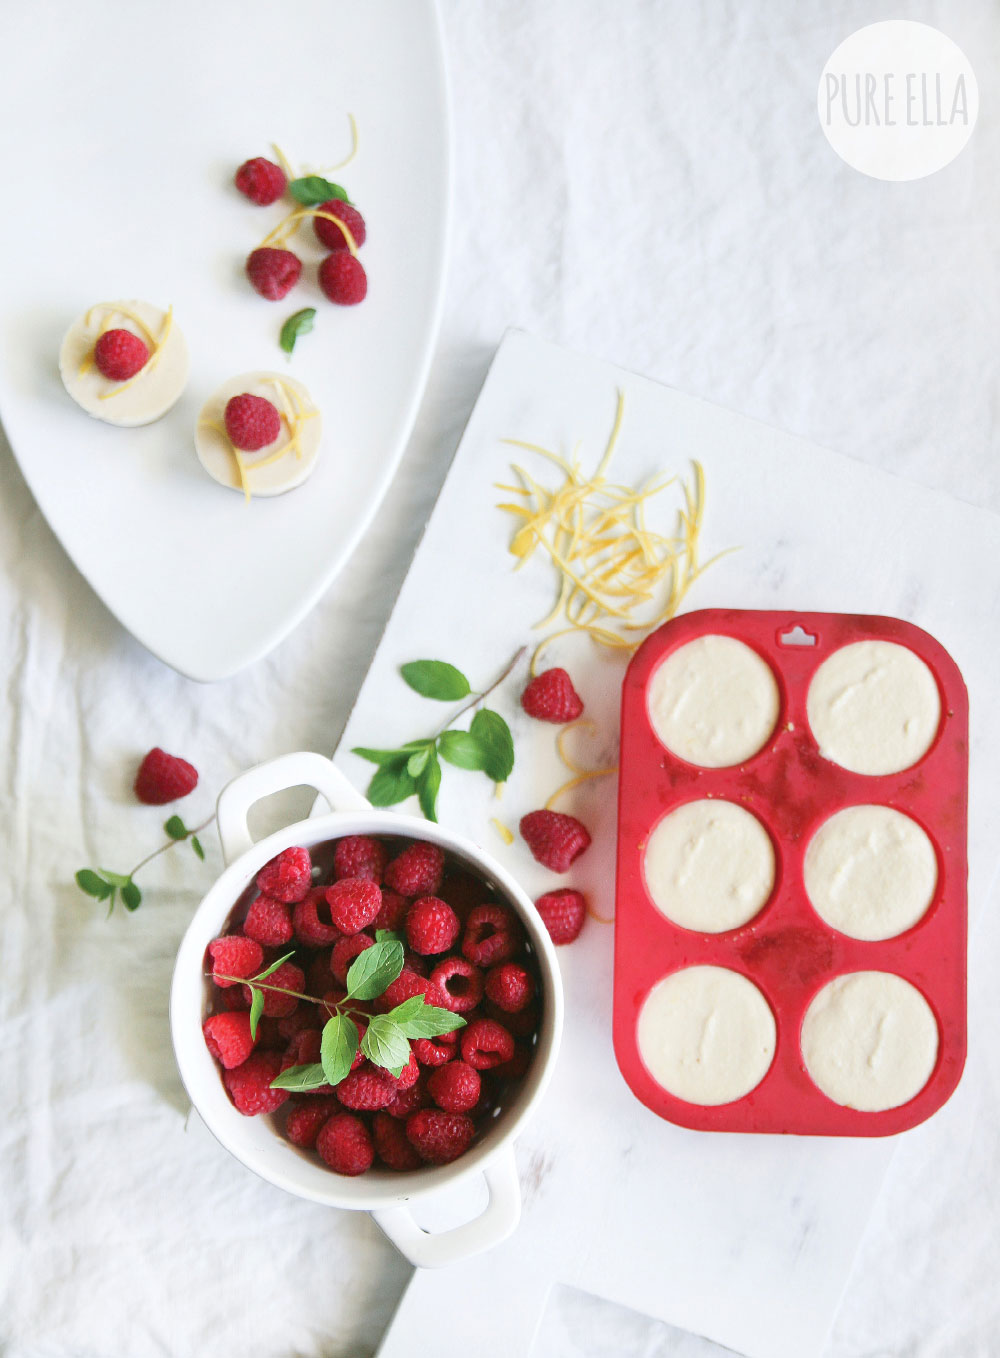 Pure-Ella-raw-raspberry-lemon-raw-vegan-cheesecakes2